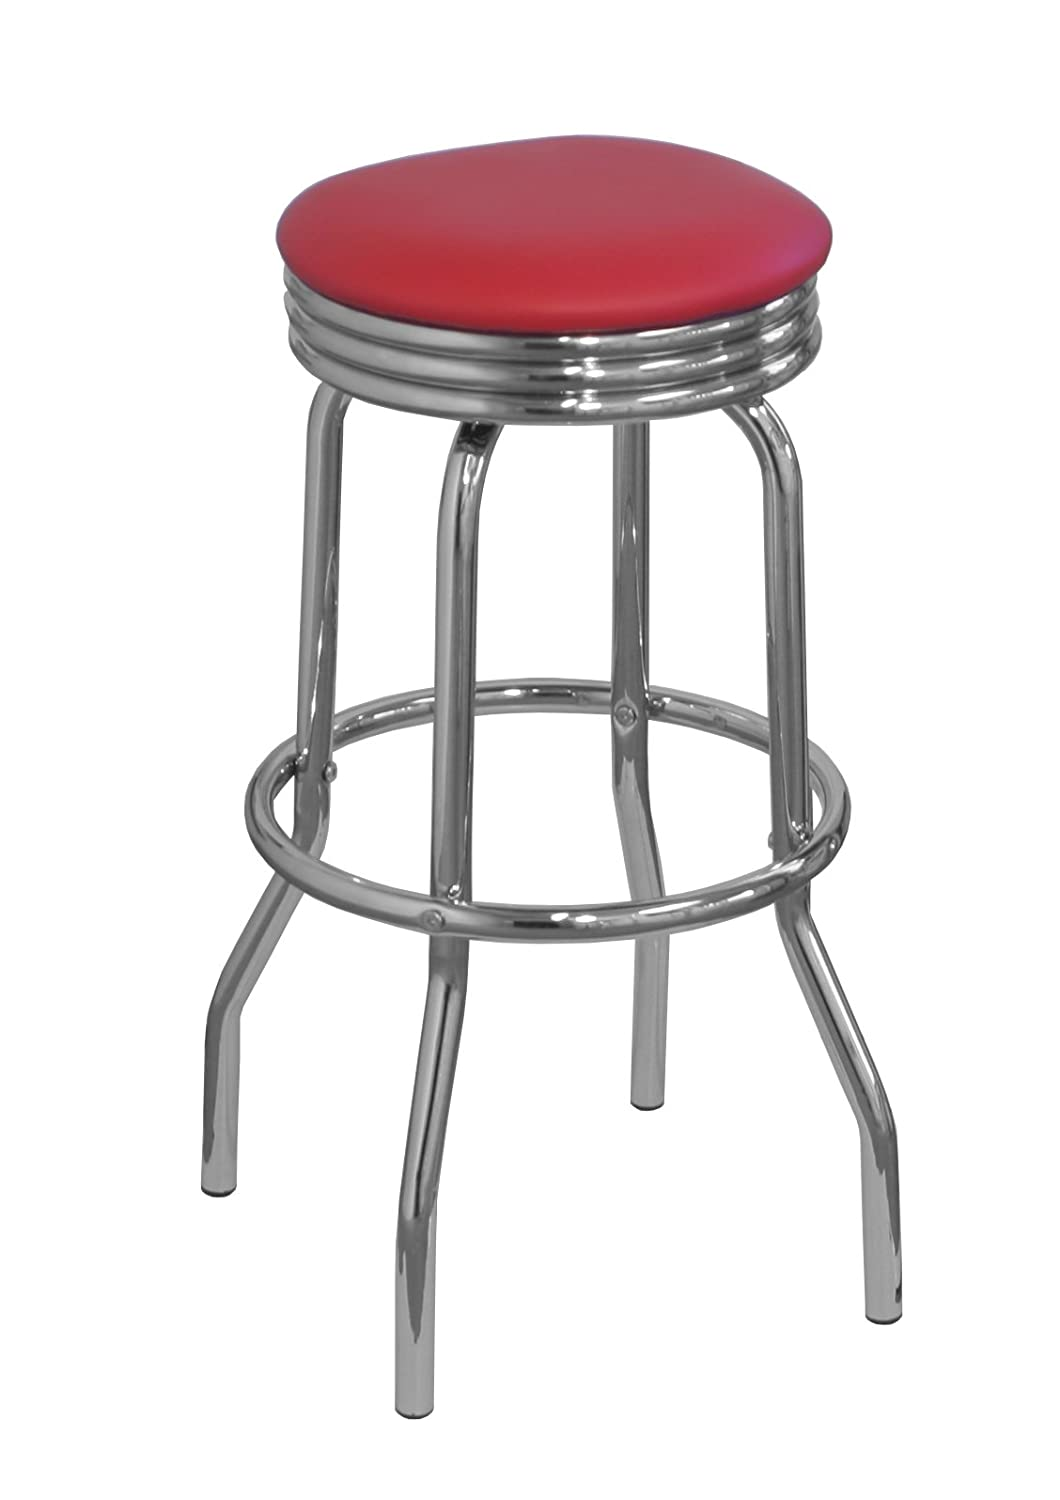 American Diner Style Bar Stool Red: Amazon.co.uk: Kitchen & Home